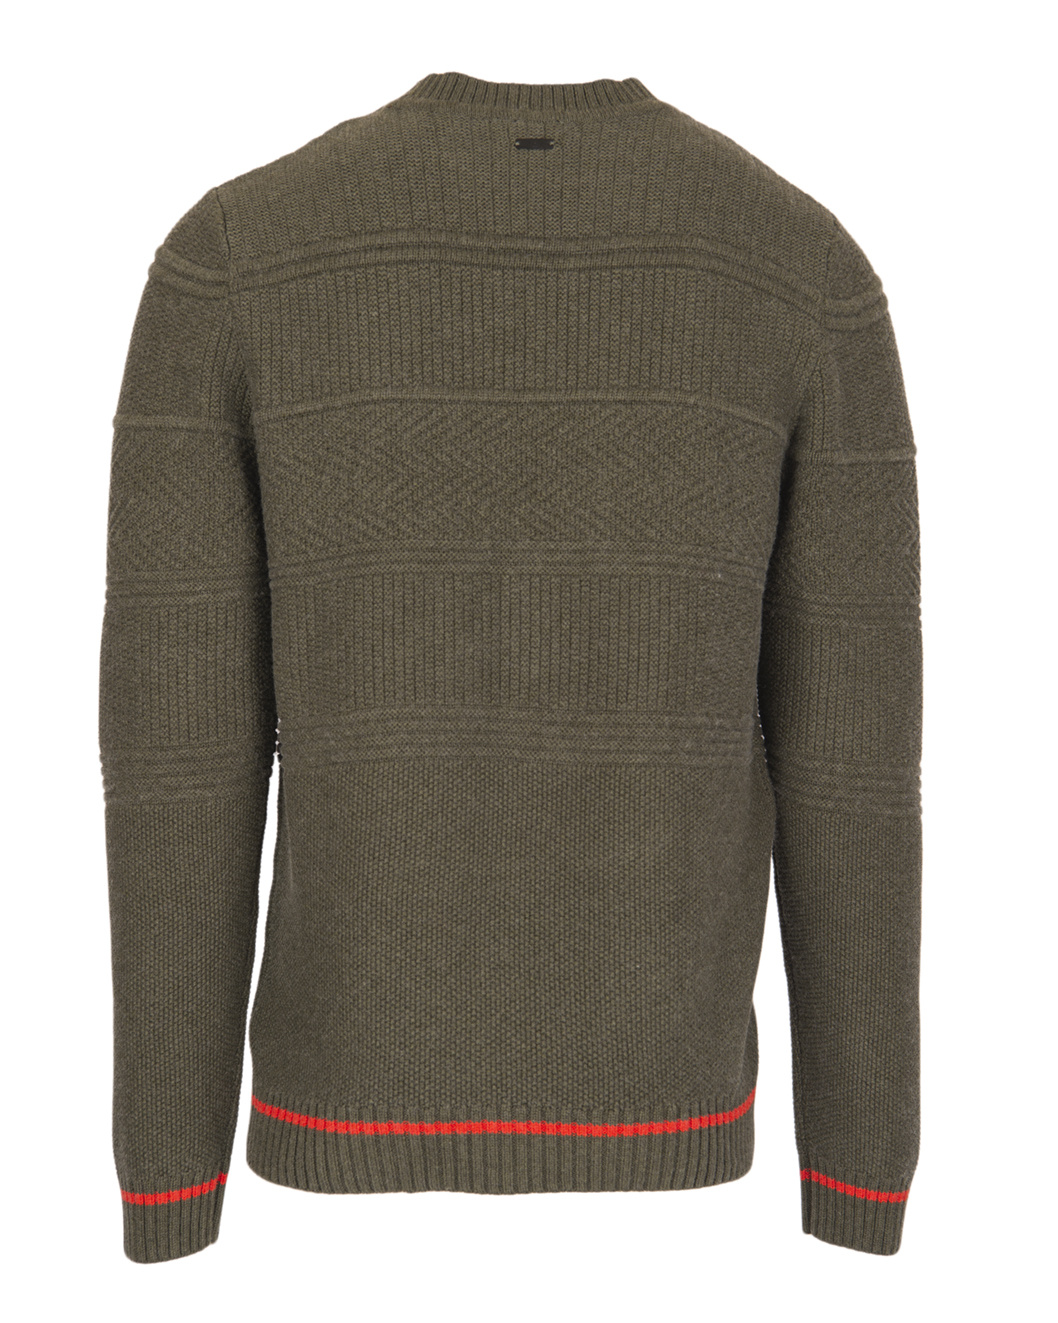 Knitted sweater Knot